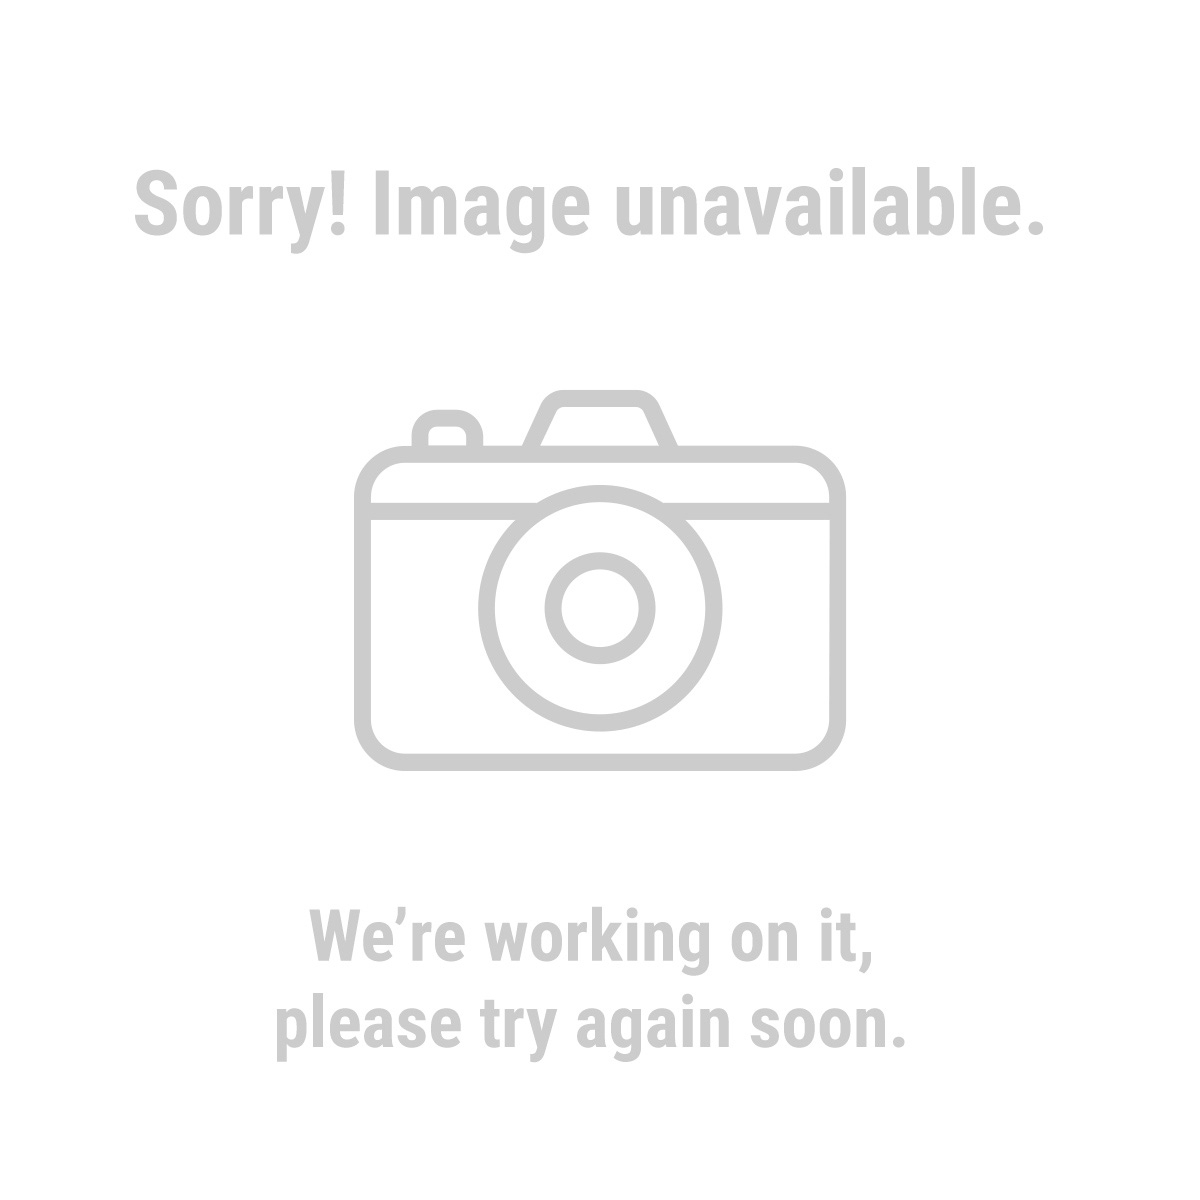 Ship to Shore 99917 Tempered Glass Bathroom Scale